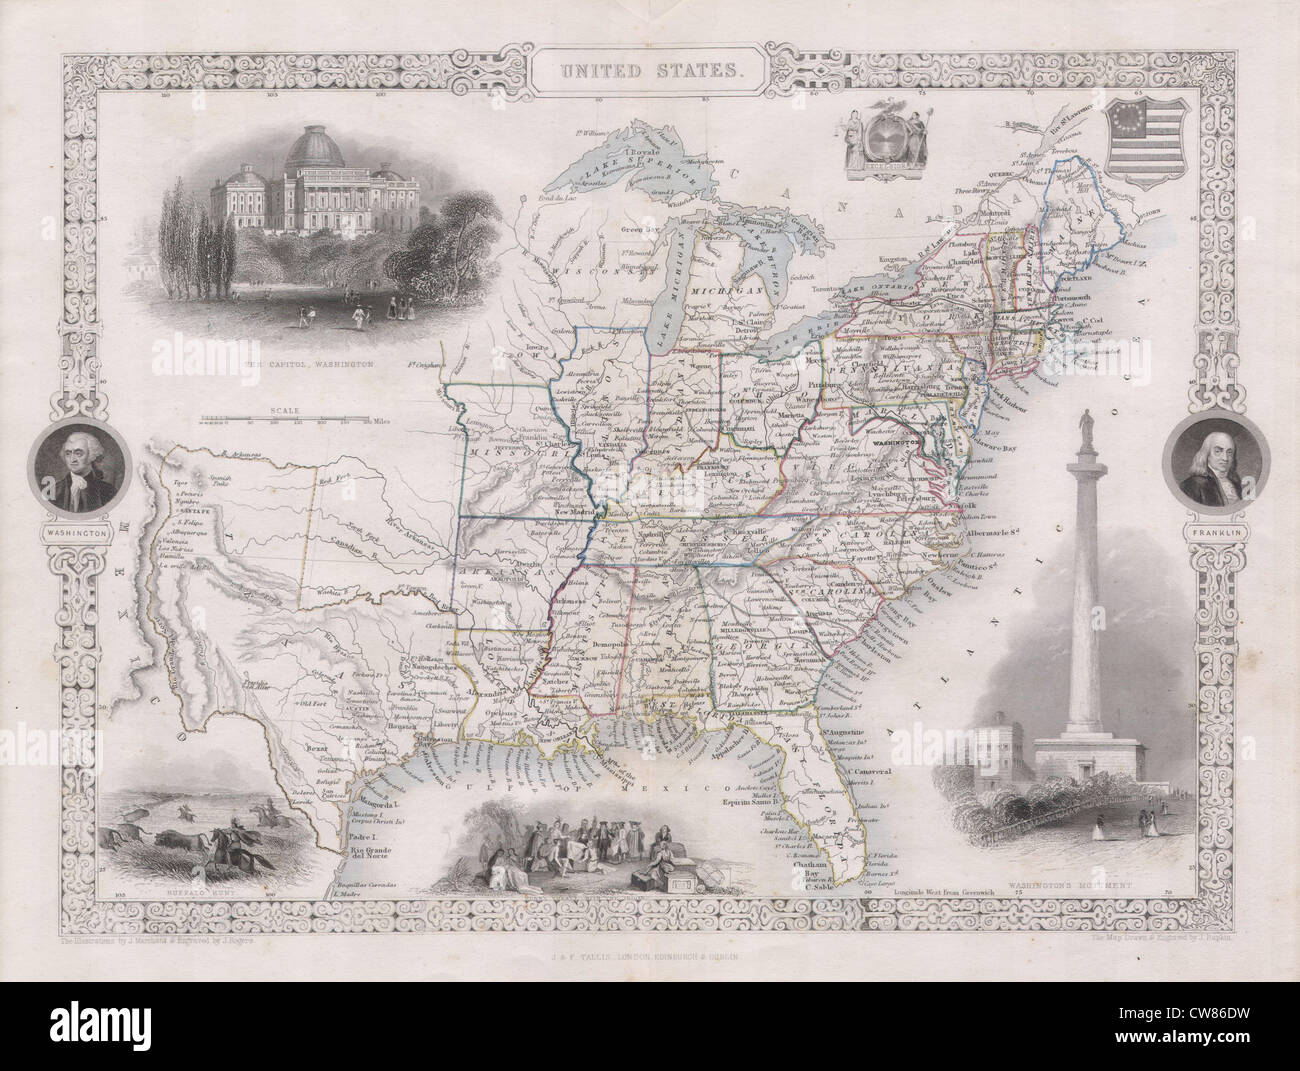 1850 Tallis Map of the United States ( Texas at fullest extent) - Stock Image